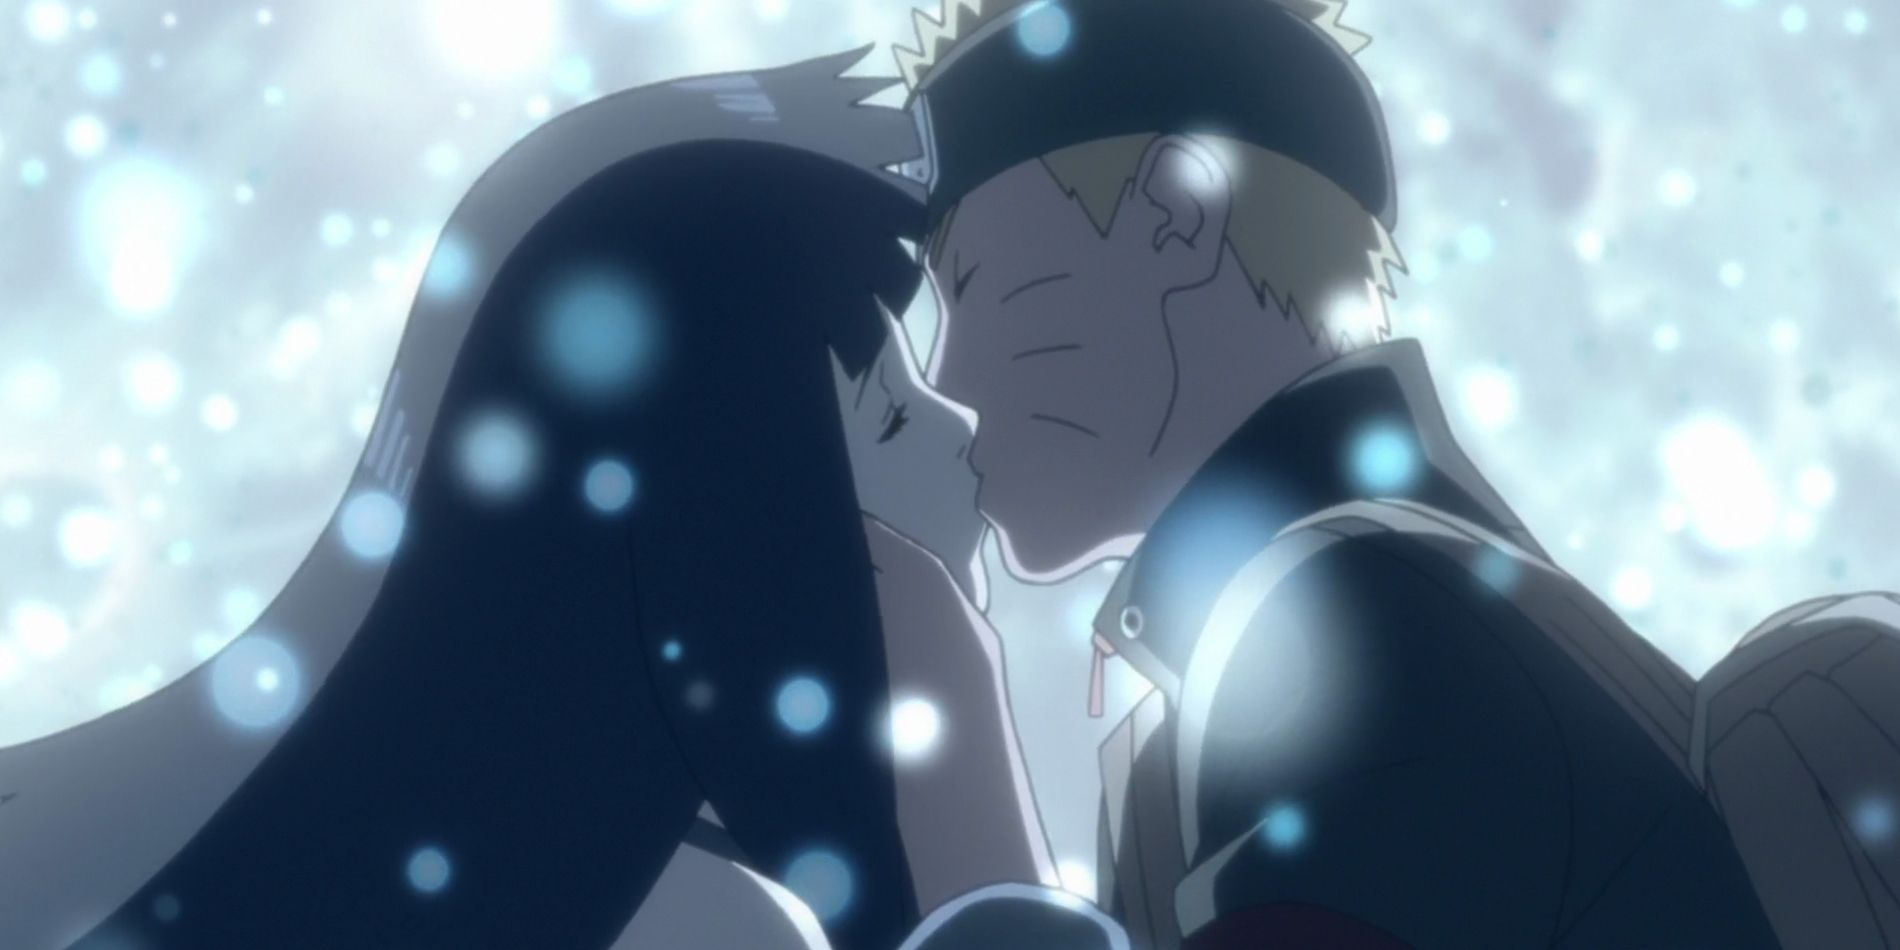 When Do Naruto & Hinata Start Dating? | Screen Rant